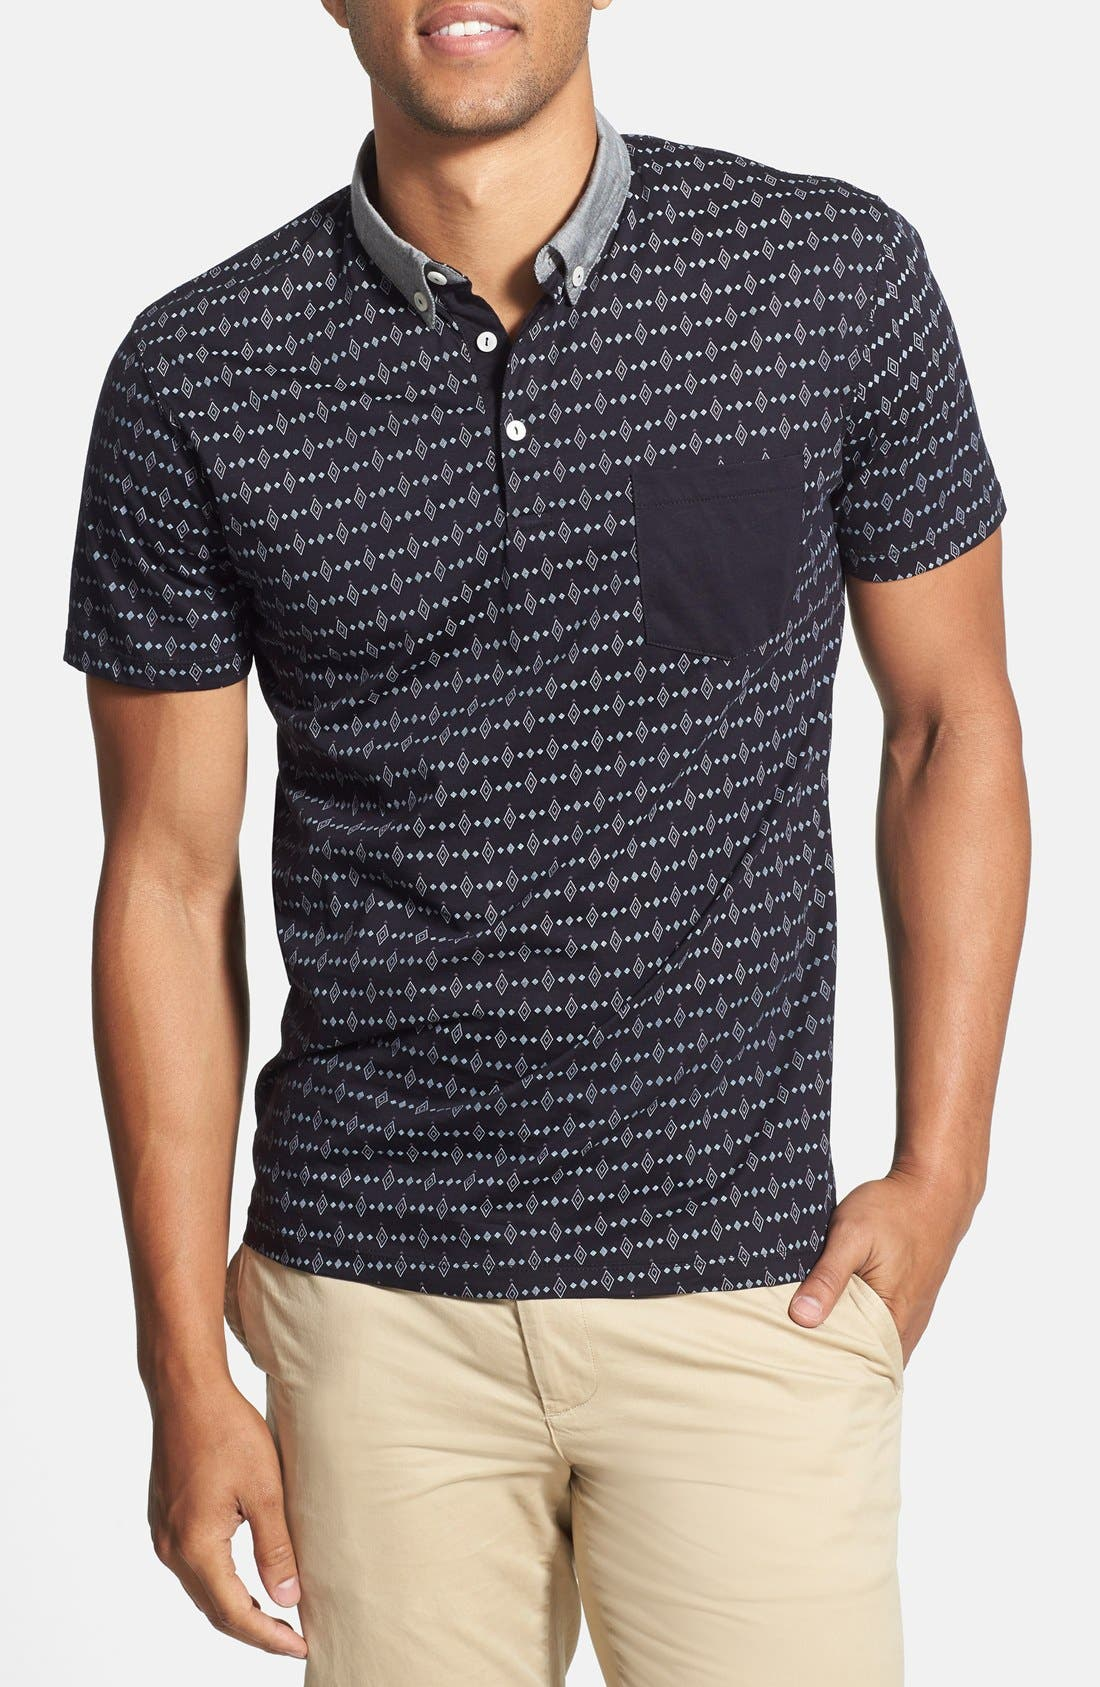 Alternate Image 1 Selected - 7 Diamonds 'Kaleidoscope' Print Mercerized Polo